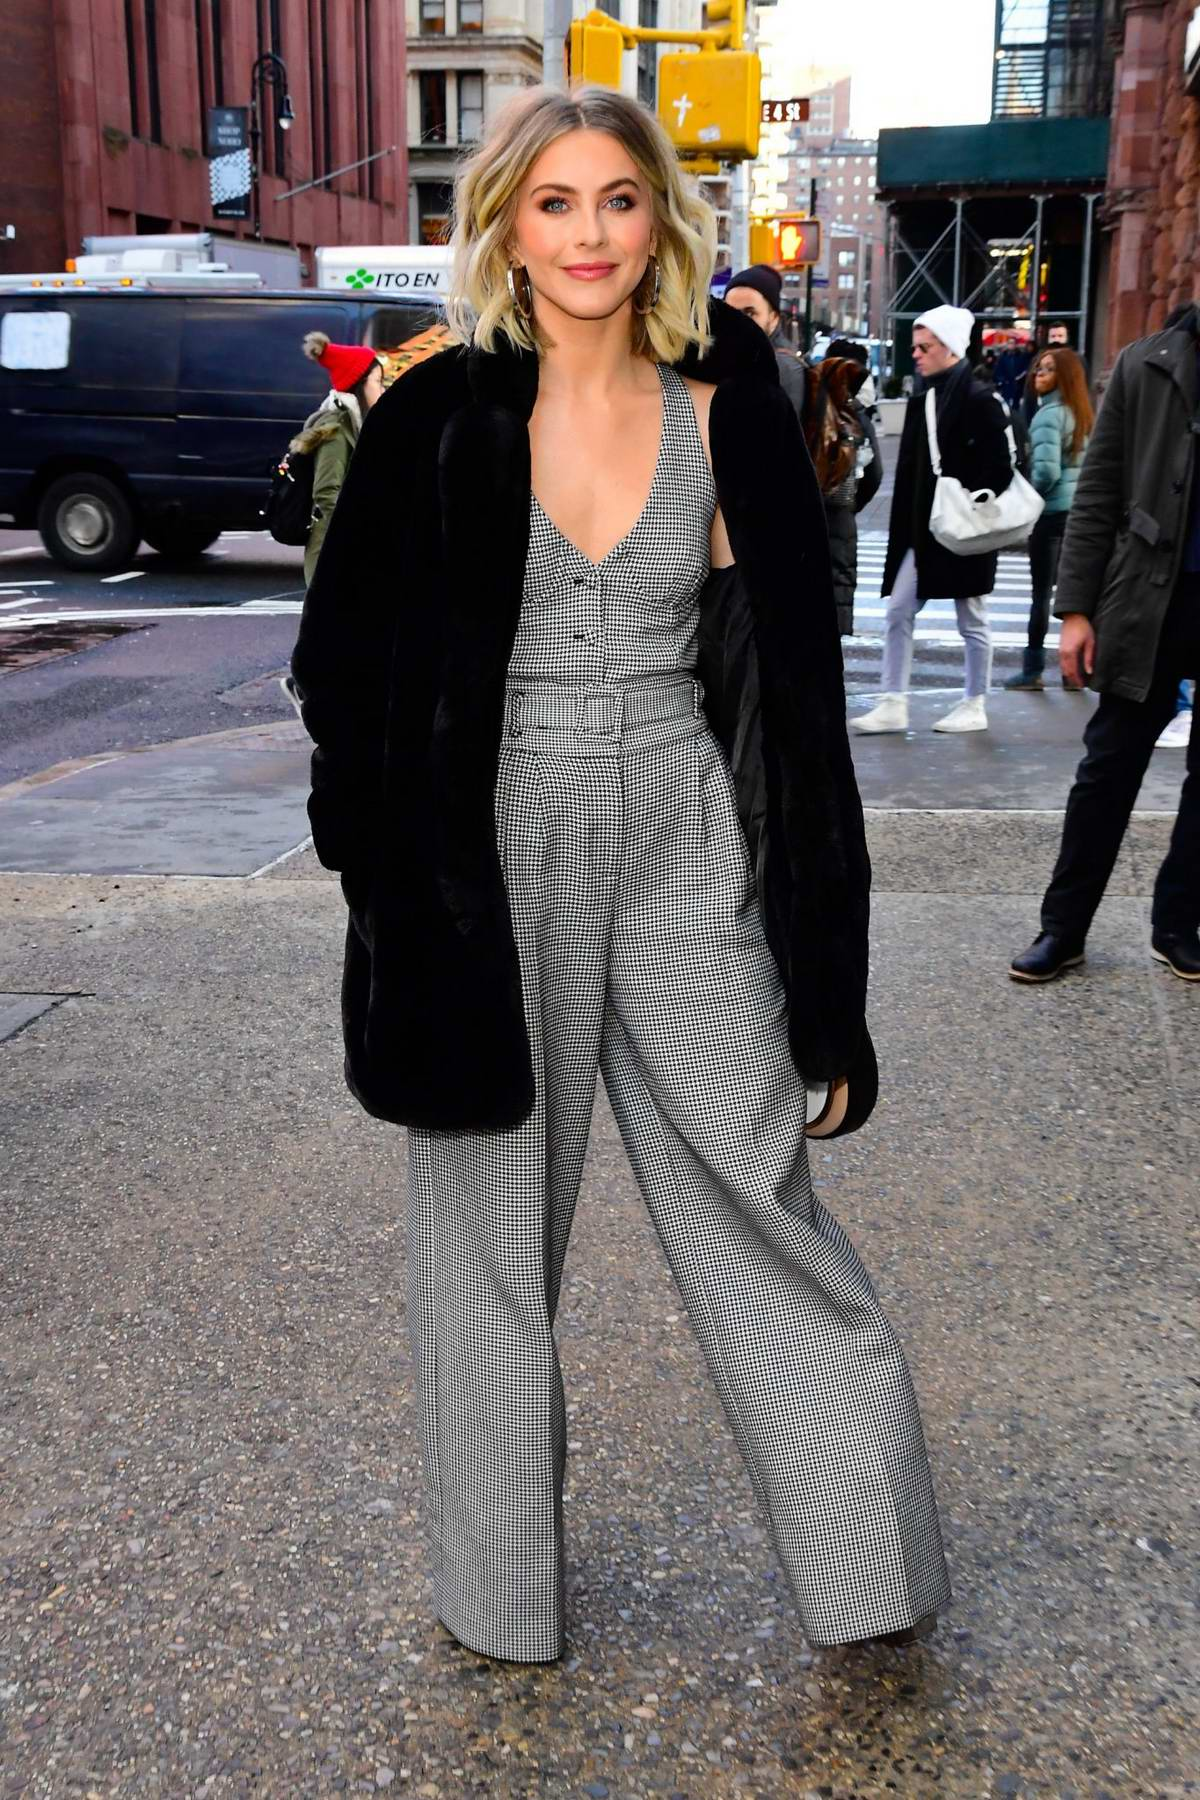 Julianne Hough looks amazing in grey houndstooth jumpsuit while visiting Build series in New York City